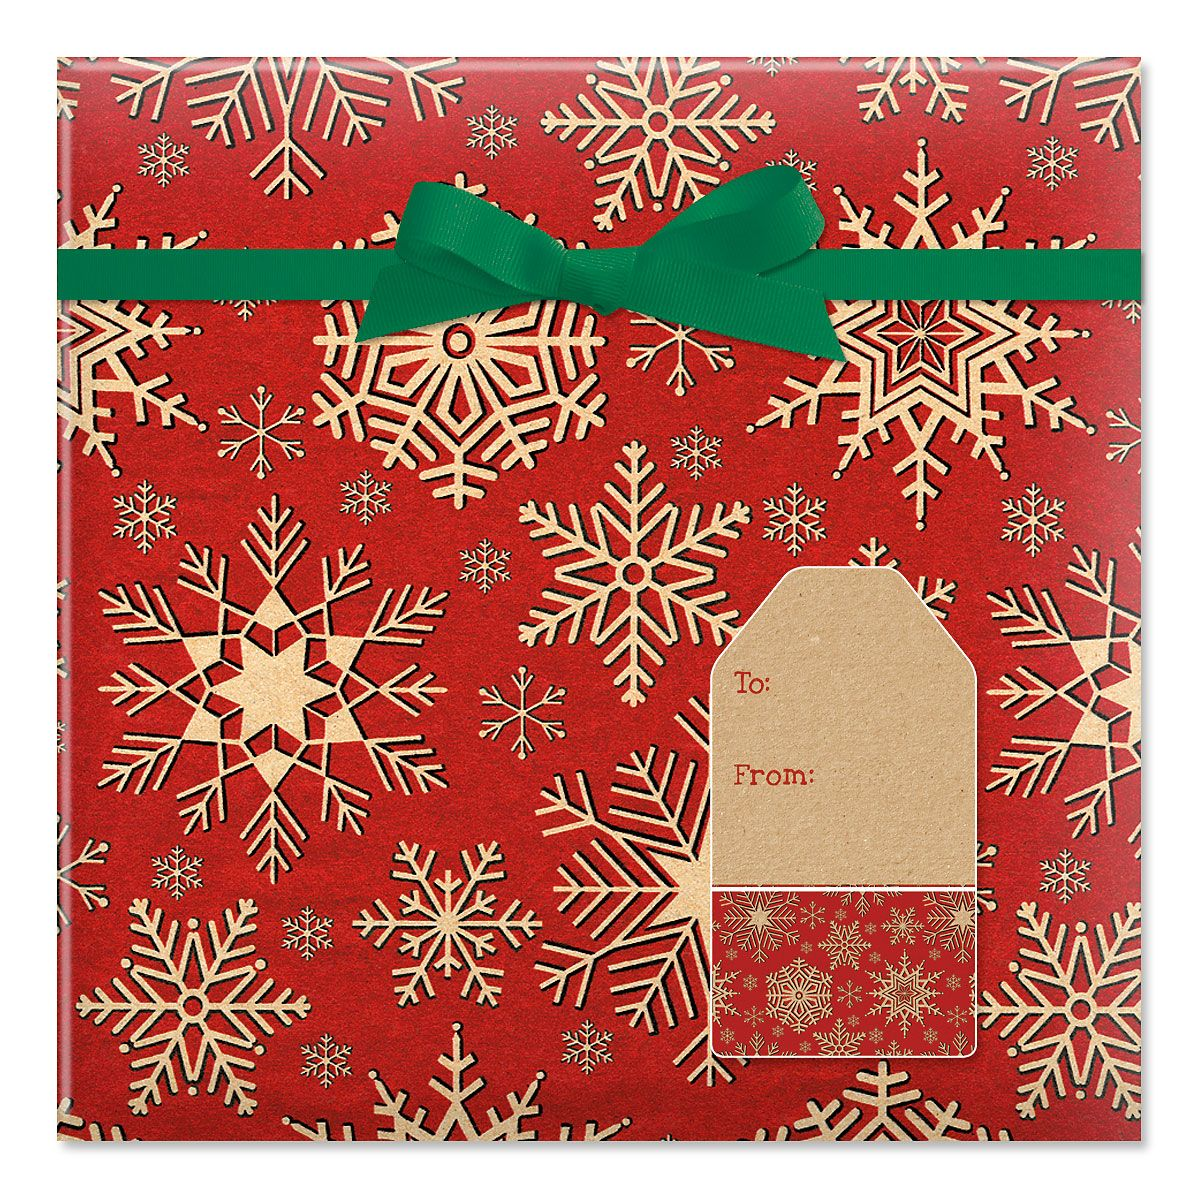 Woodcut Snowflake Jumbo Rolled Gift Wrap and Labels